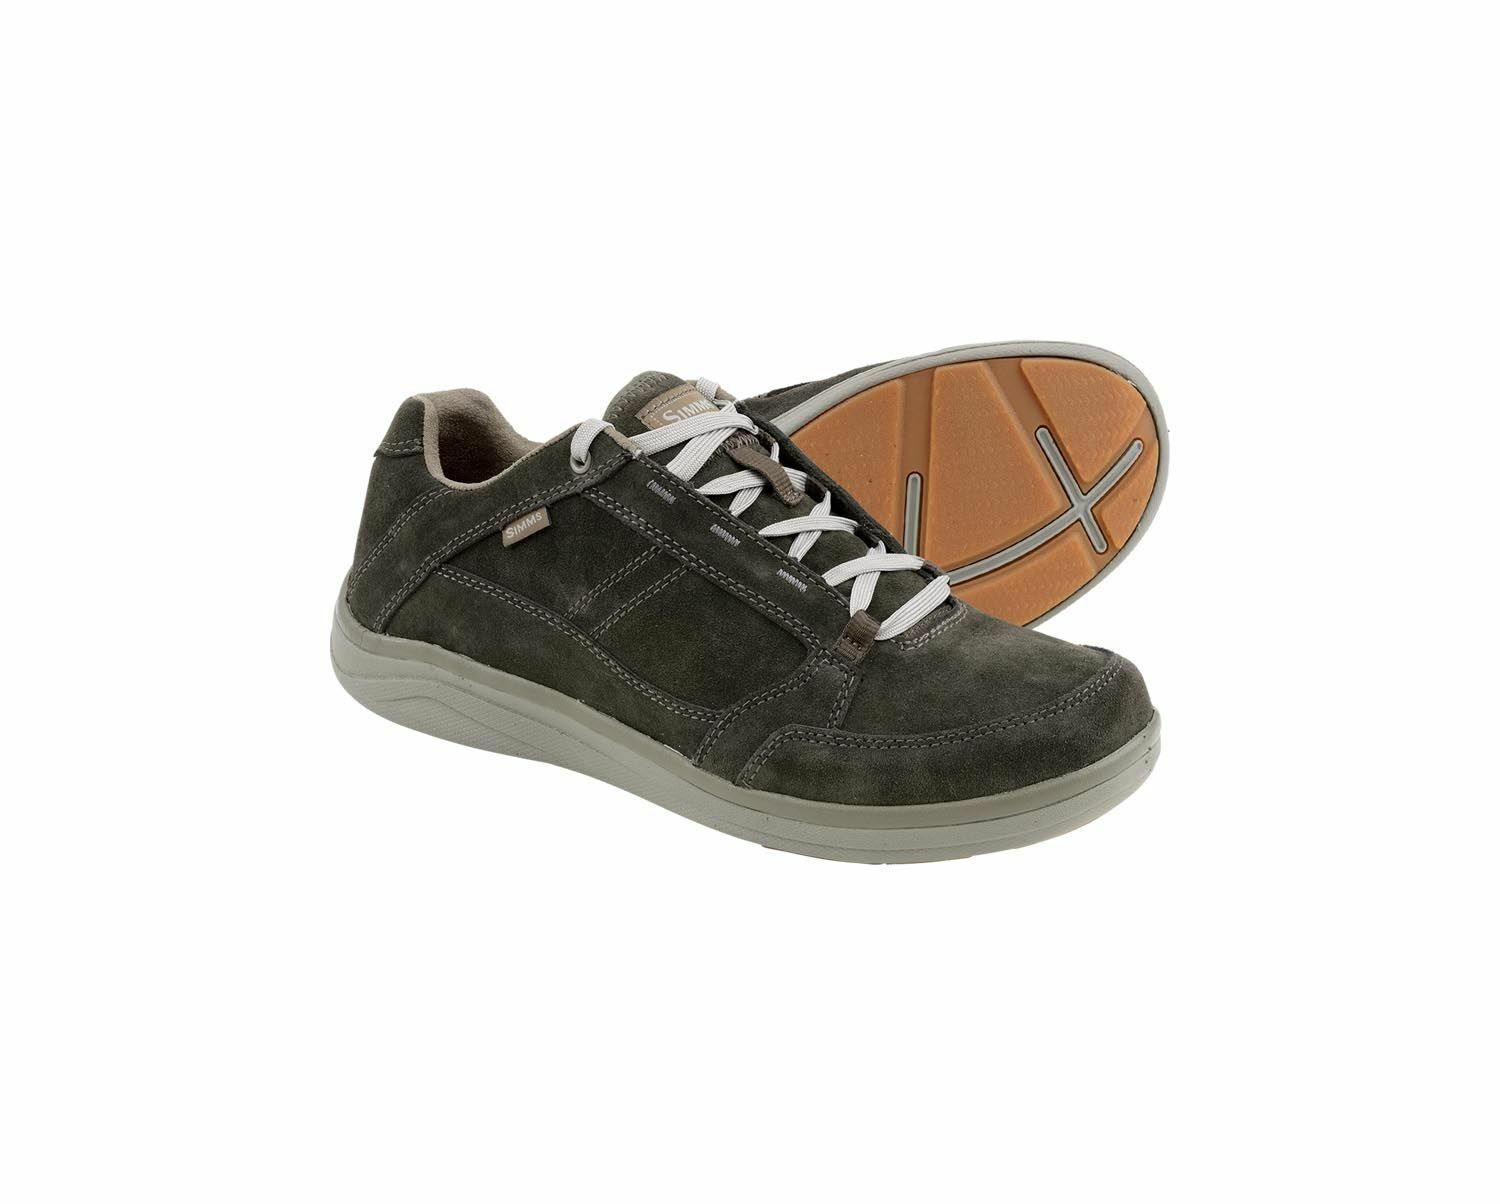 Simms Westshore Leather shoes  Dark Olive - Size 12 -CLOSEOUT  happy shopping